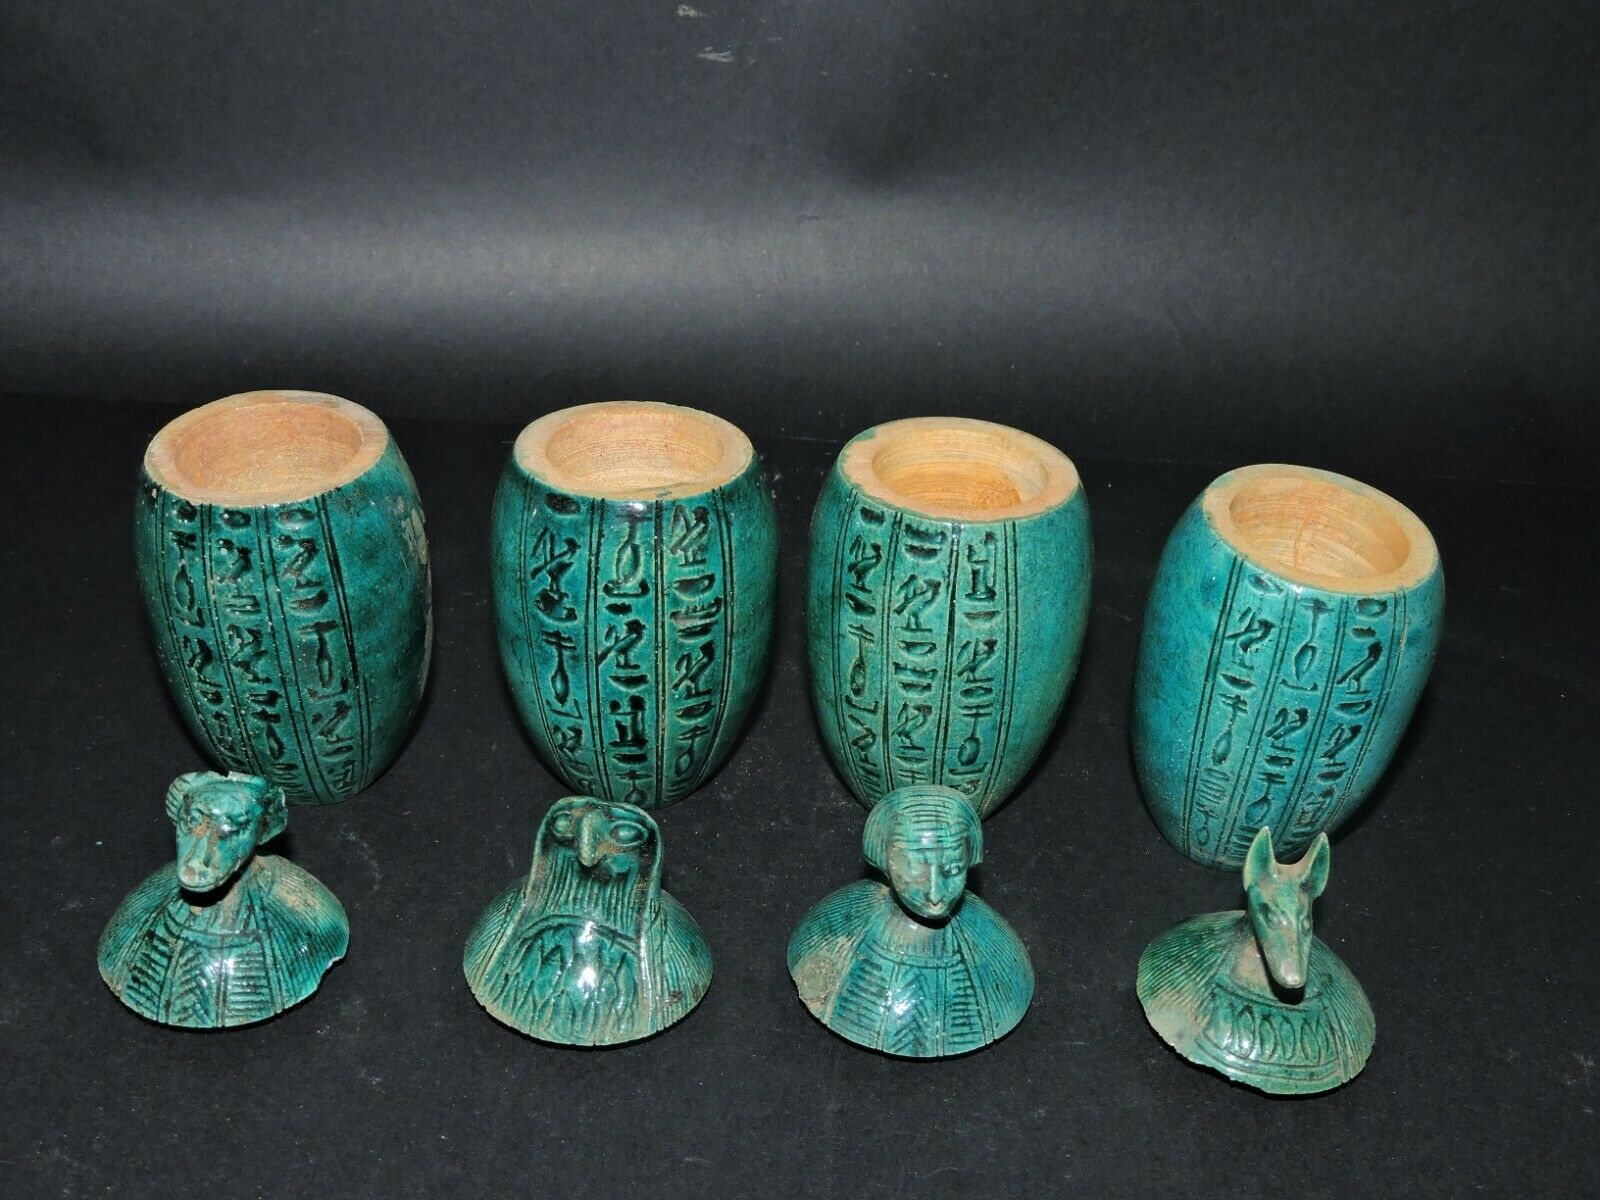 Antique Collection Set Of 4 Egyptian Ancient Canopic Jars Organs Storage Statues - $199.00